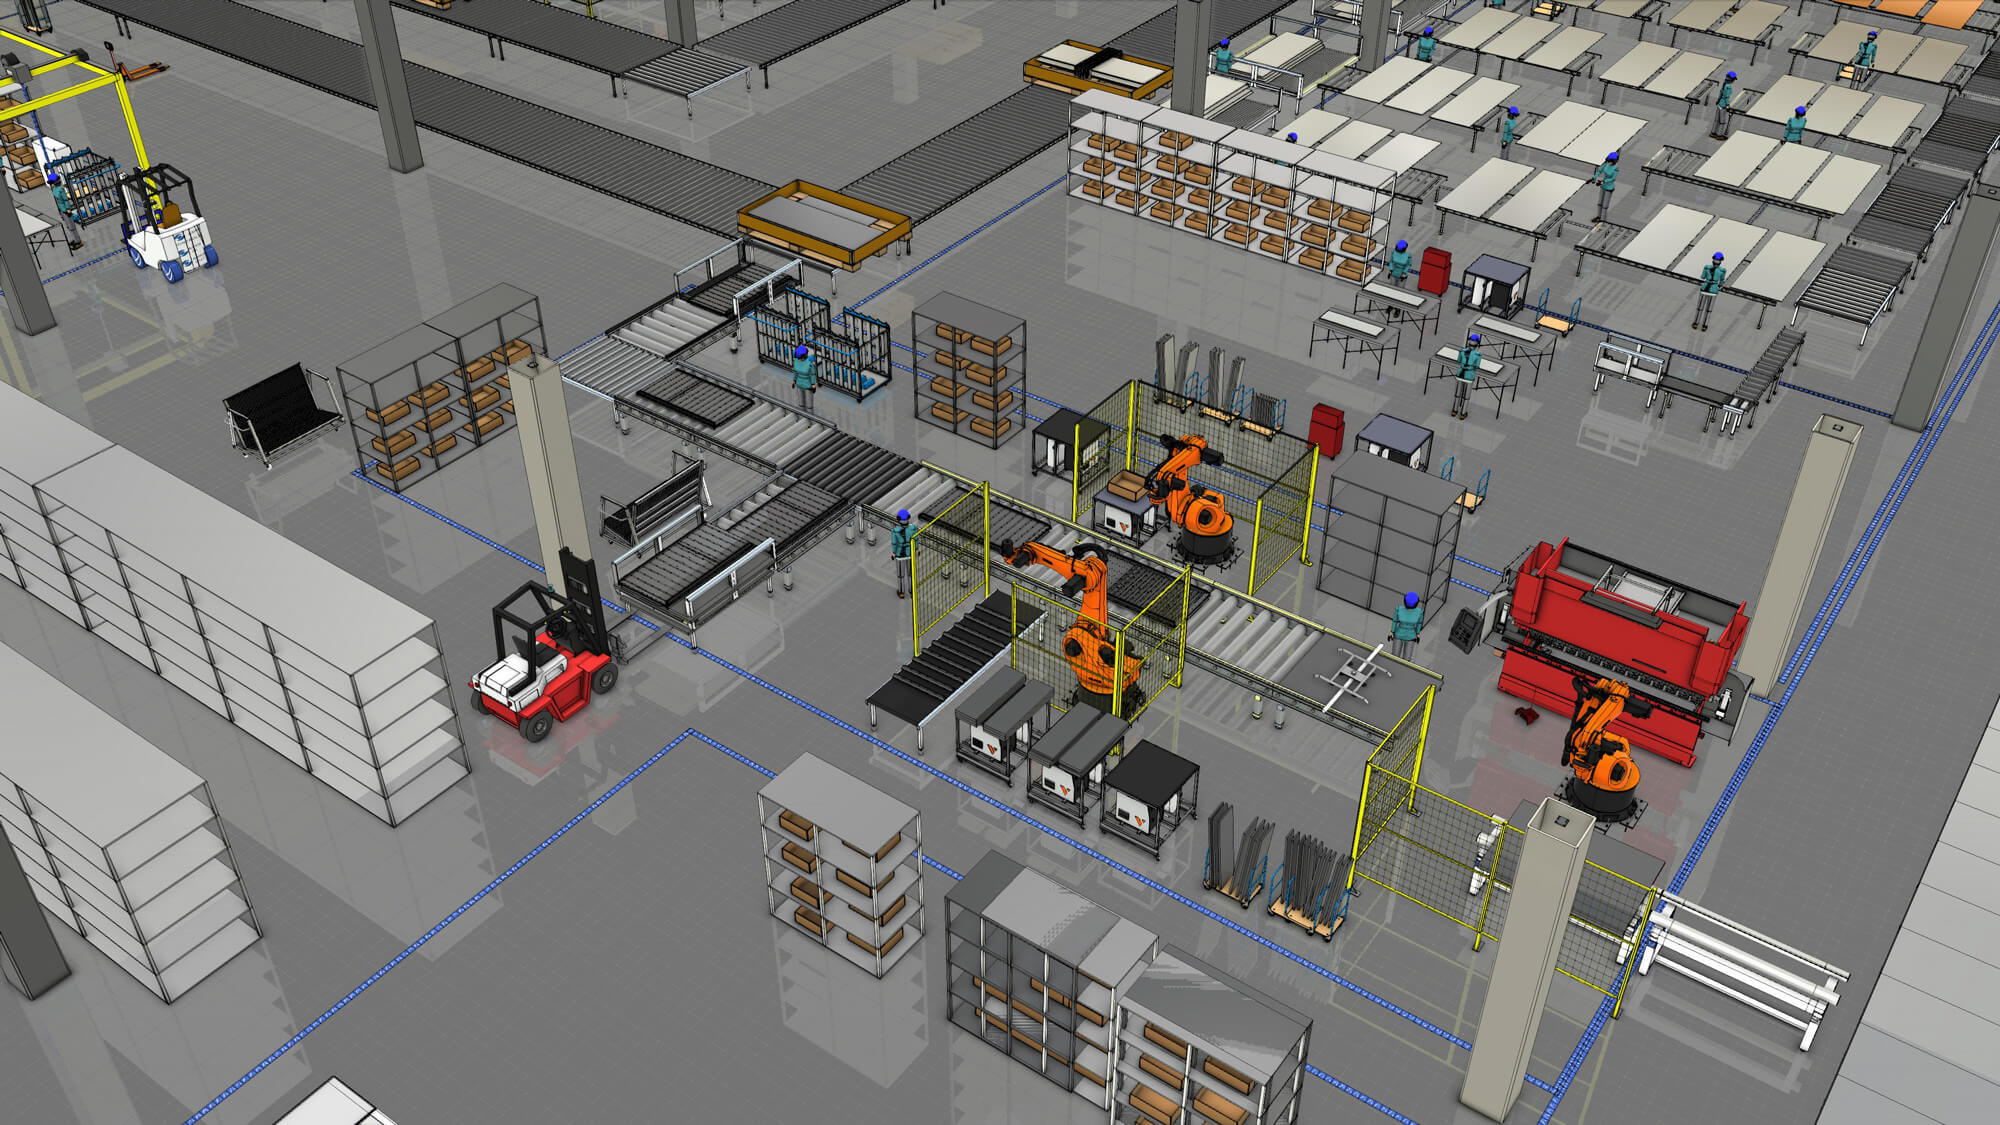 Layout of a manufacturing plant